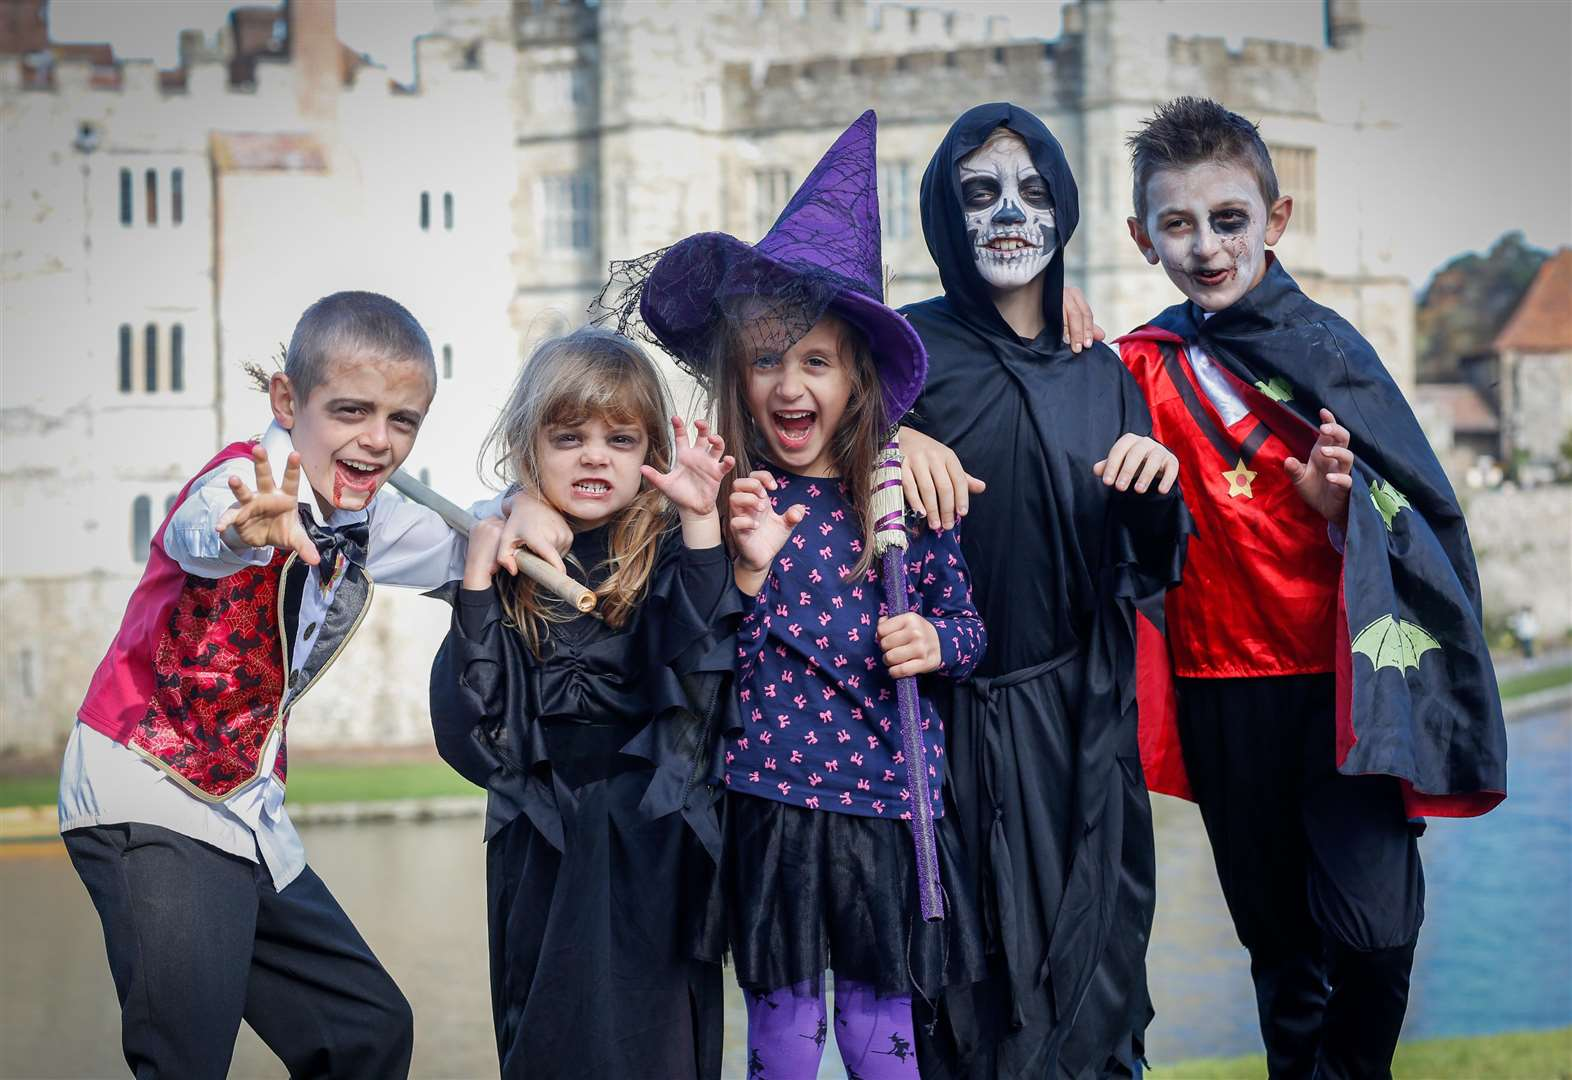 Have a spooky half term: here's our guide